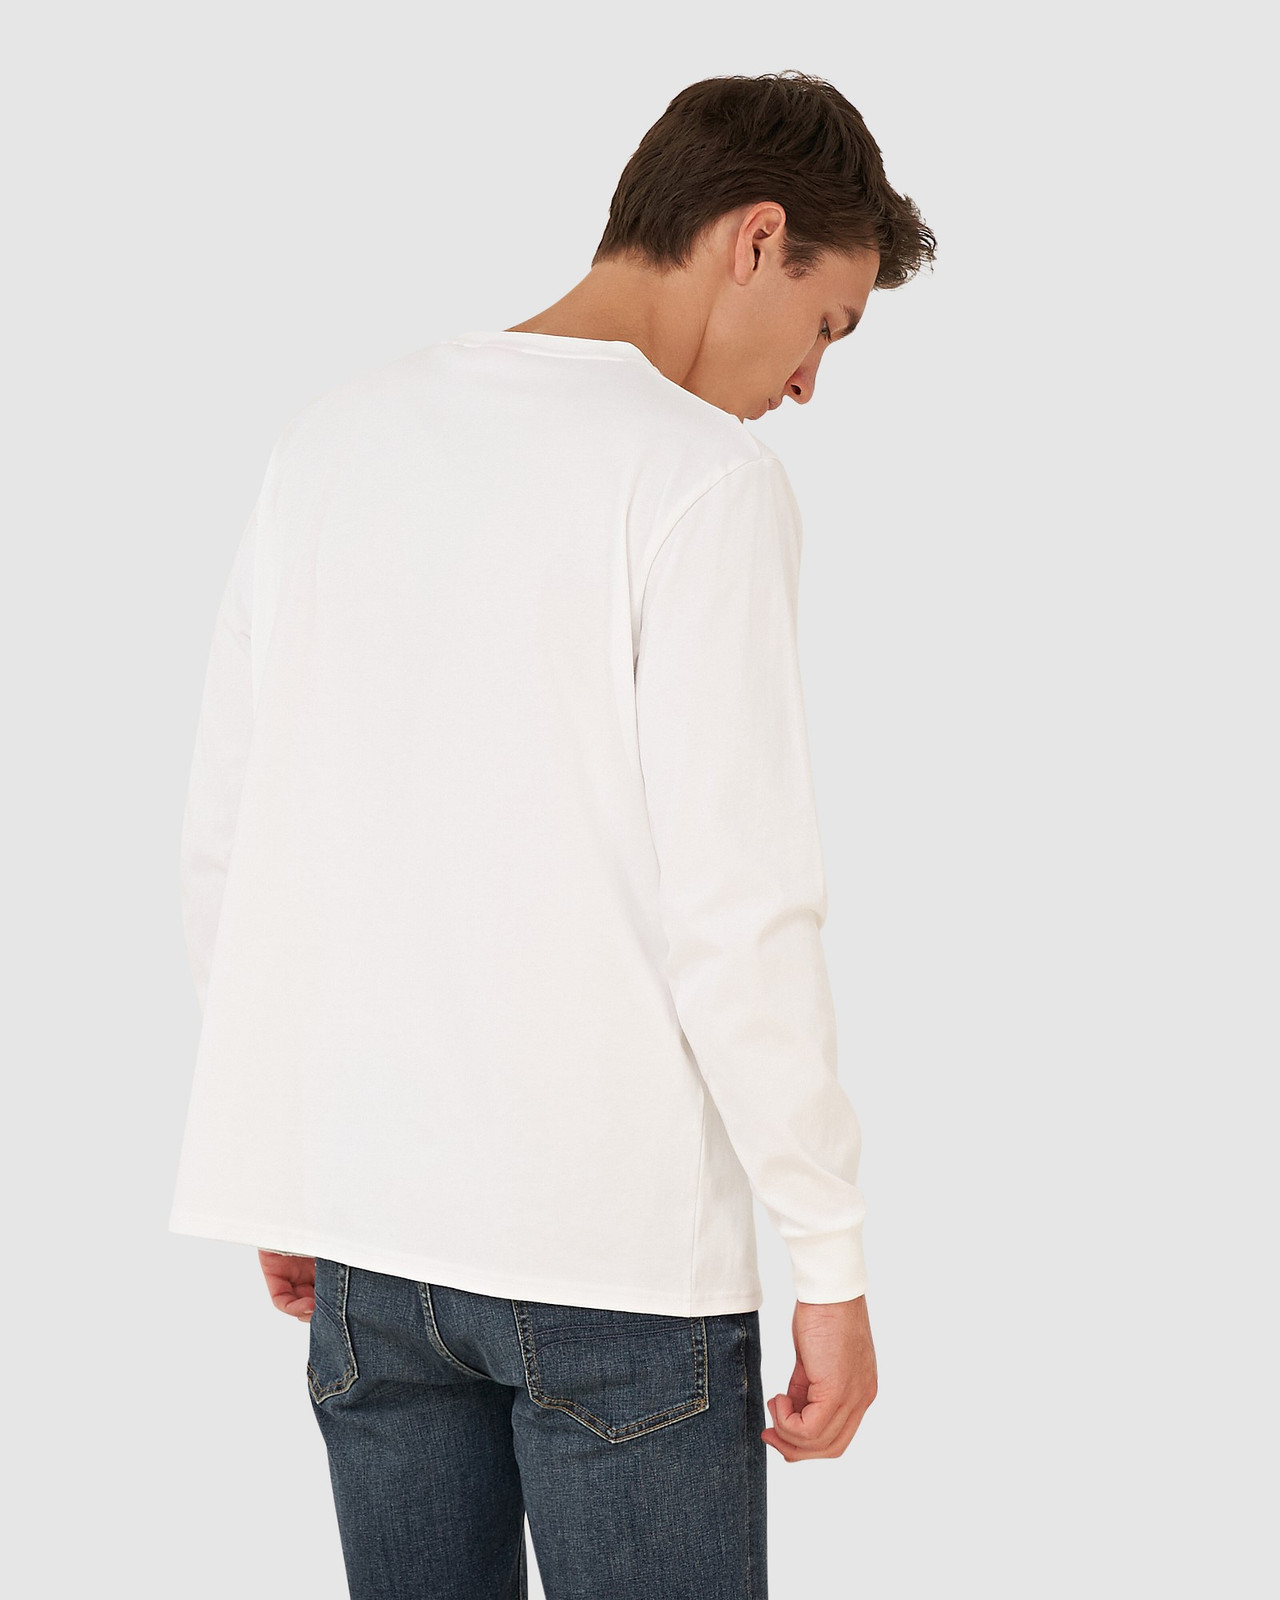 Superdry Mens YACHT PREP LS TOP White Long Sleeve T Shirts 2